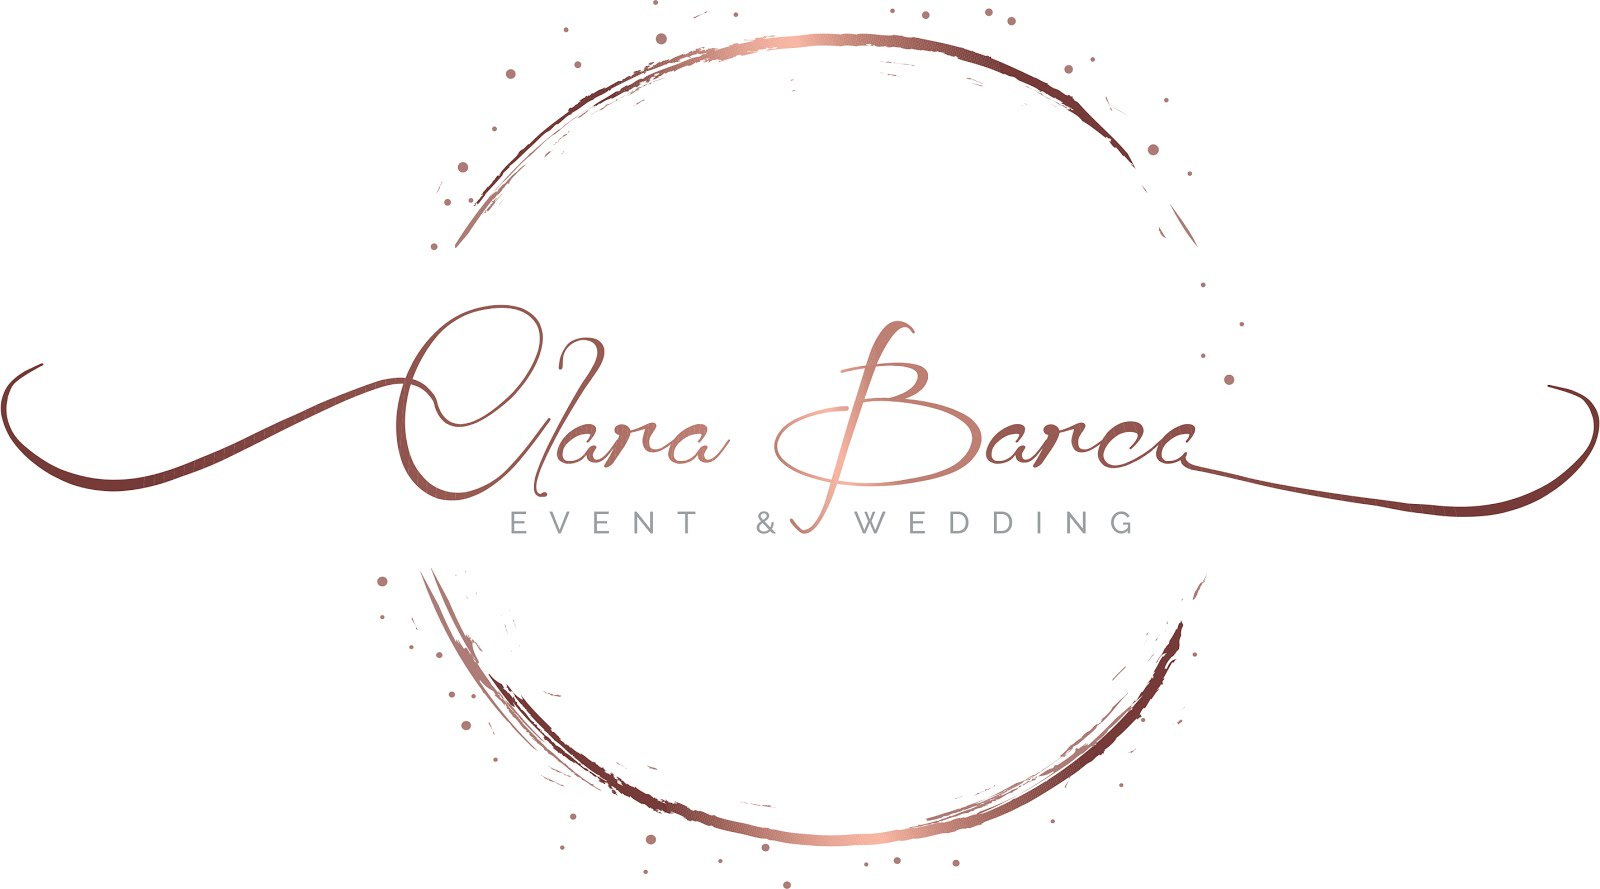 CB Event and Wedding